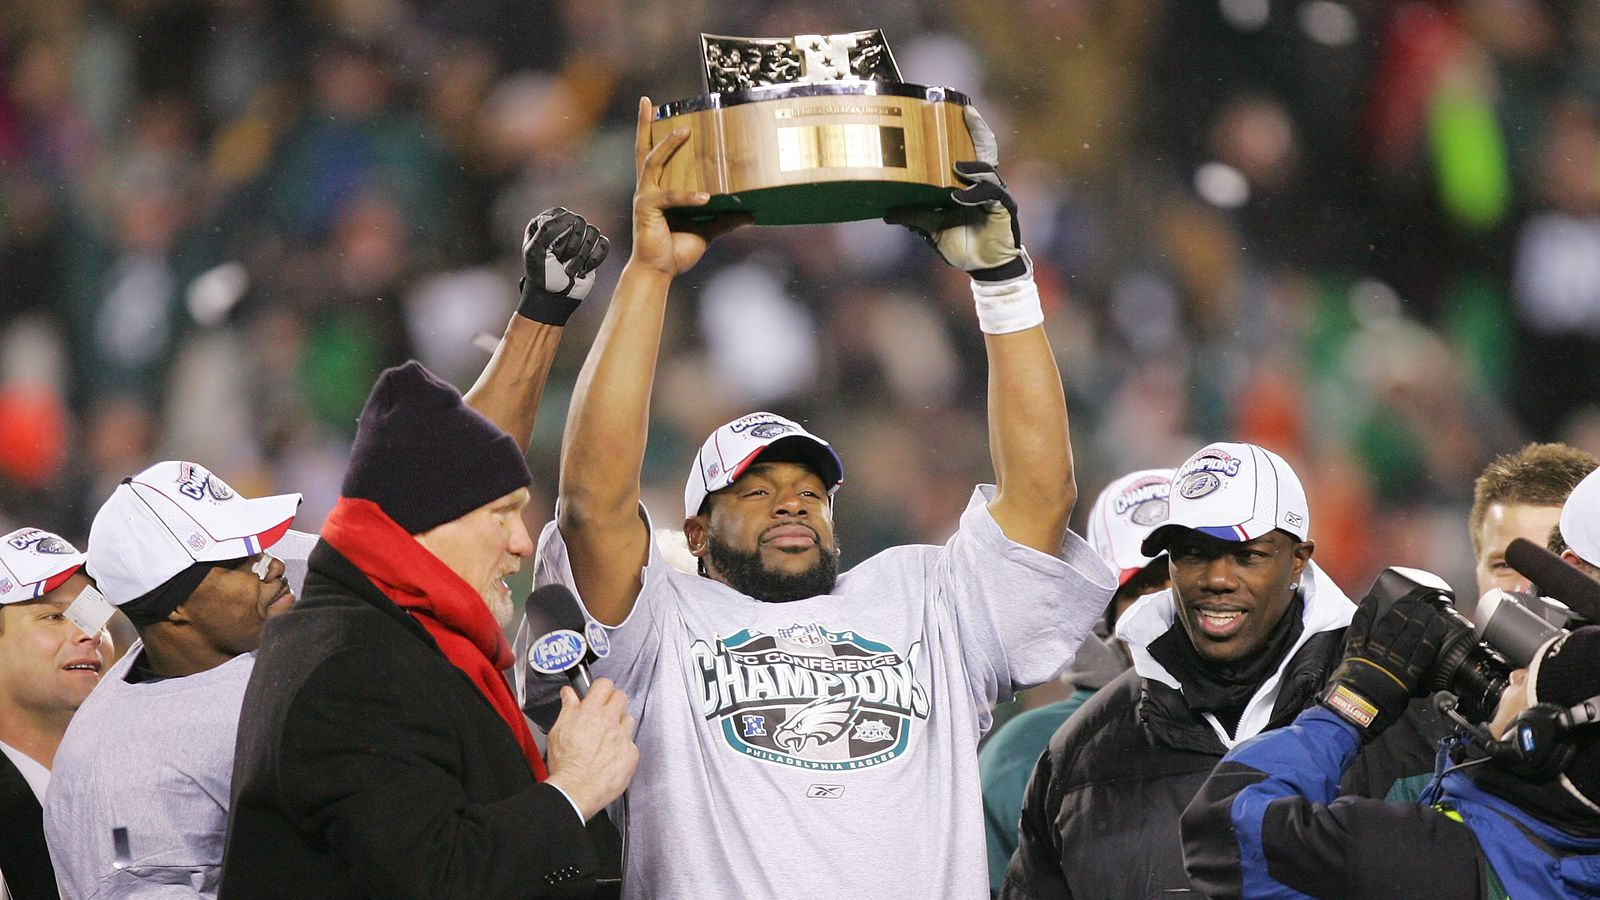 Philadelphia Eagles Were Nfc Champions 10 Years Ago From